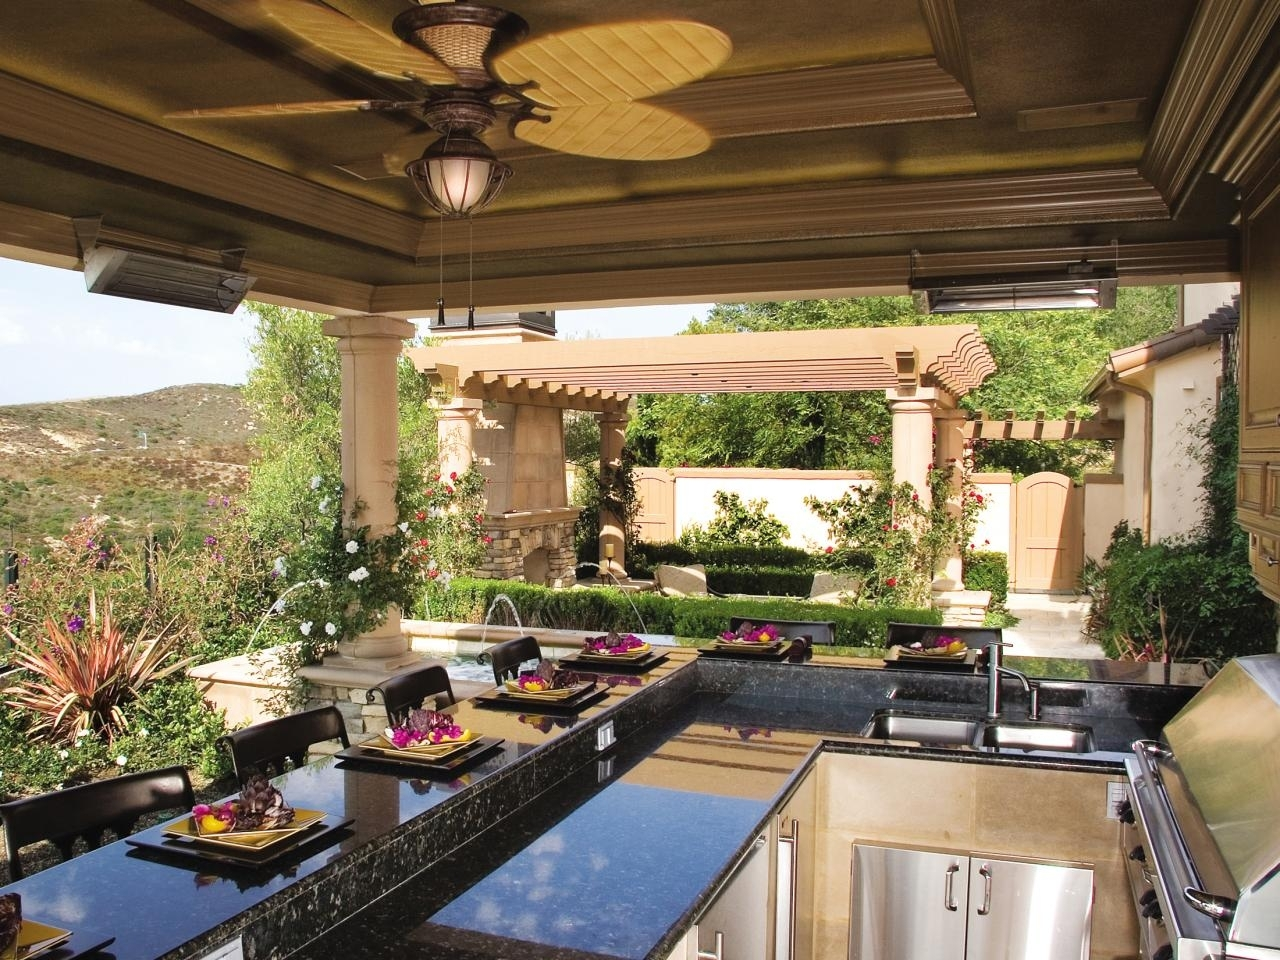 Image of: Outdoor Kitchen Countertops Options Hgtv Throughout Outdoor Kitchen Wood Countertops Nice Outdoor Kitchen Wood Countertops Inspiration